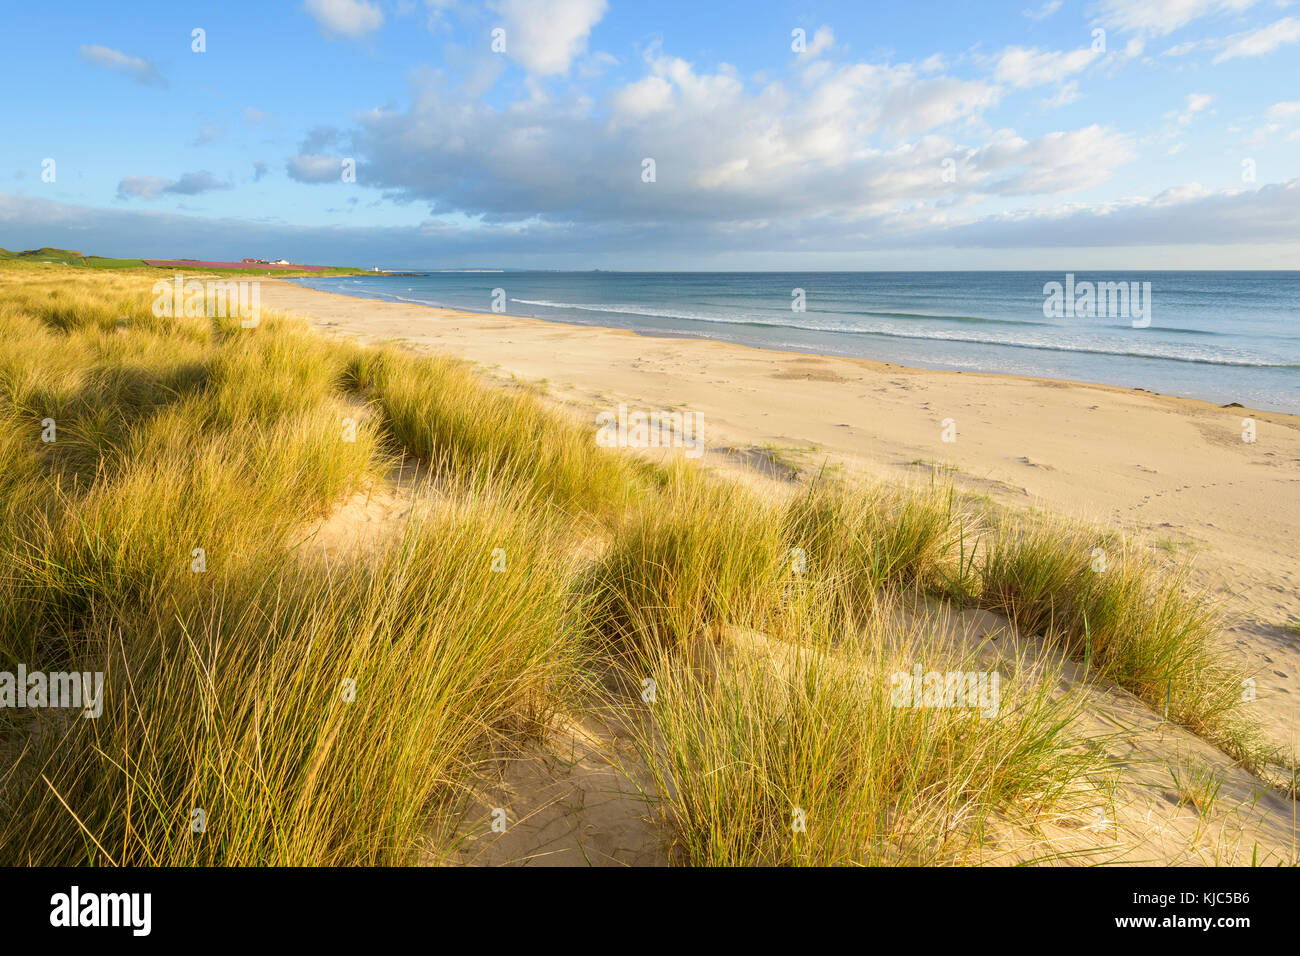 Sand dunes with dune grass on the beach at Bamburgh along the North Sea in Northumberland, England, United Kingdom - Stock Image